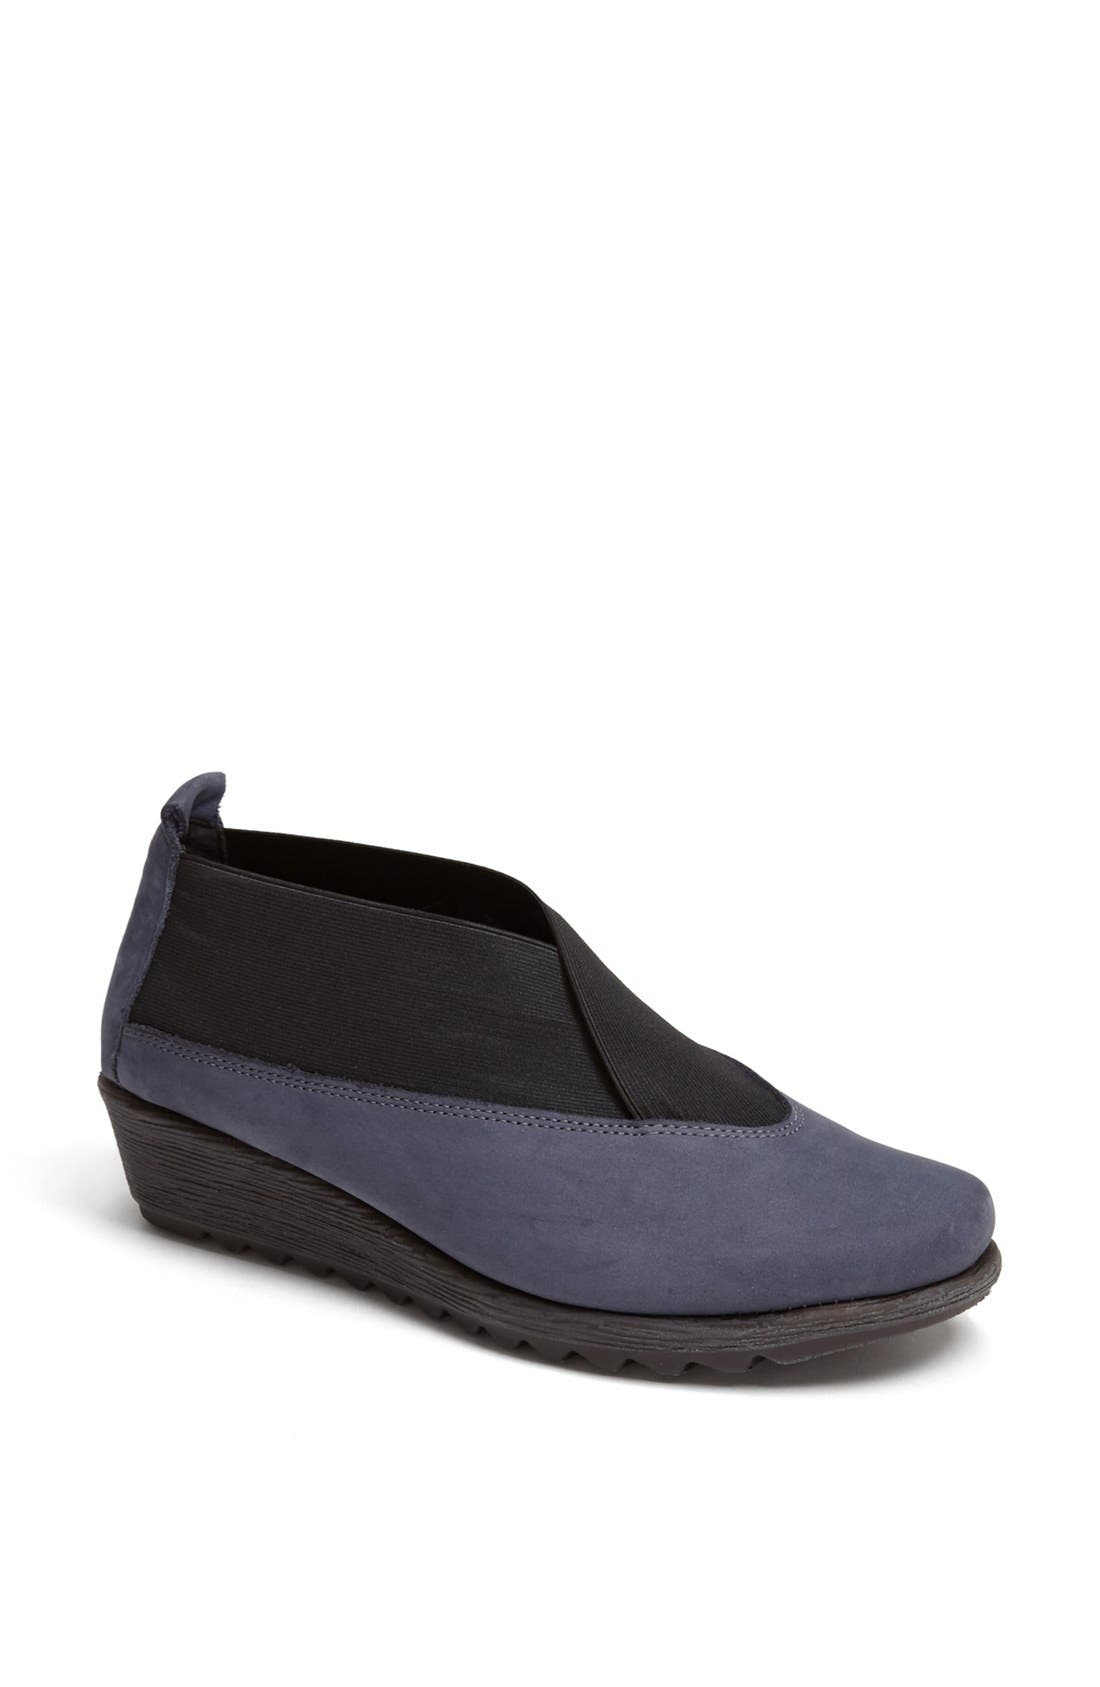 The FLEXX 'Stretch Run' Slip-On